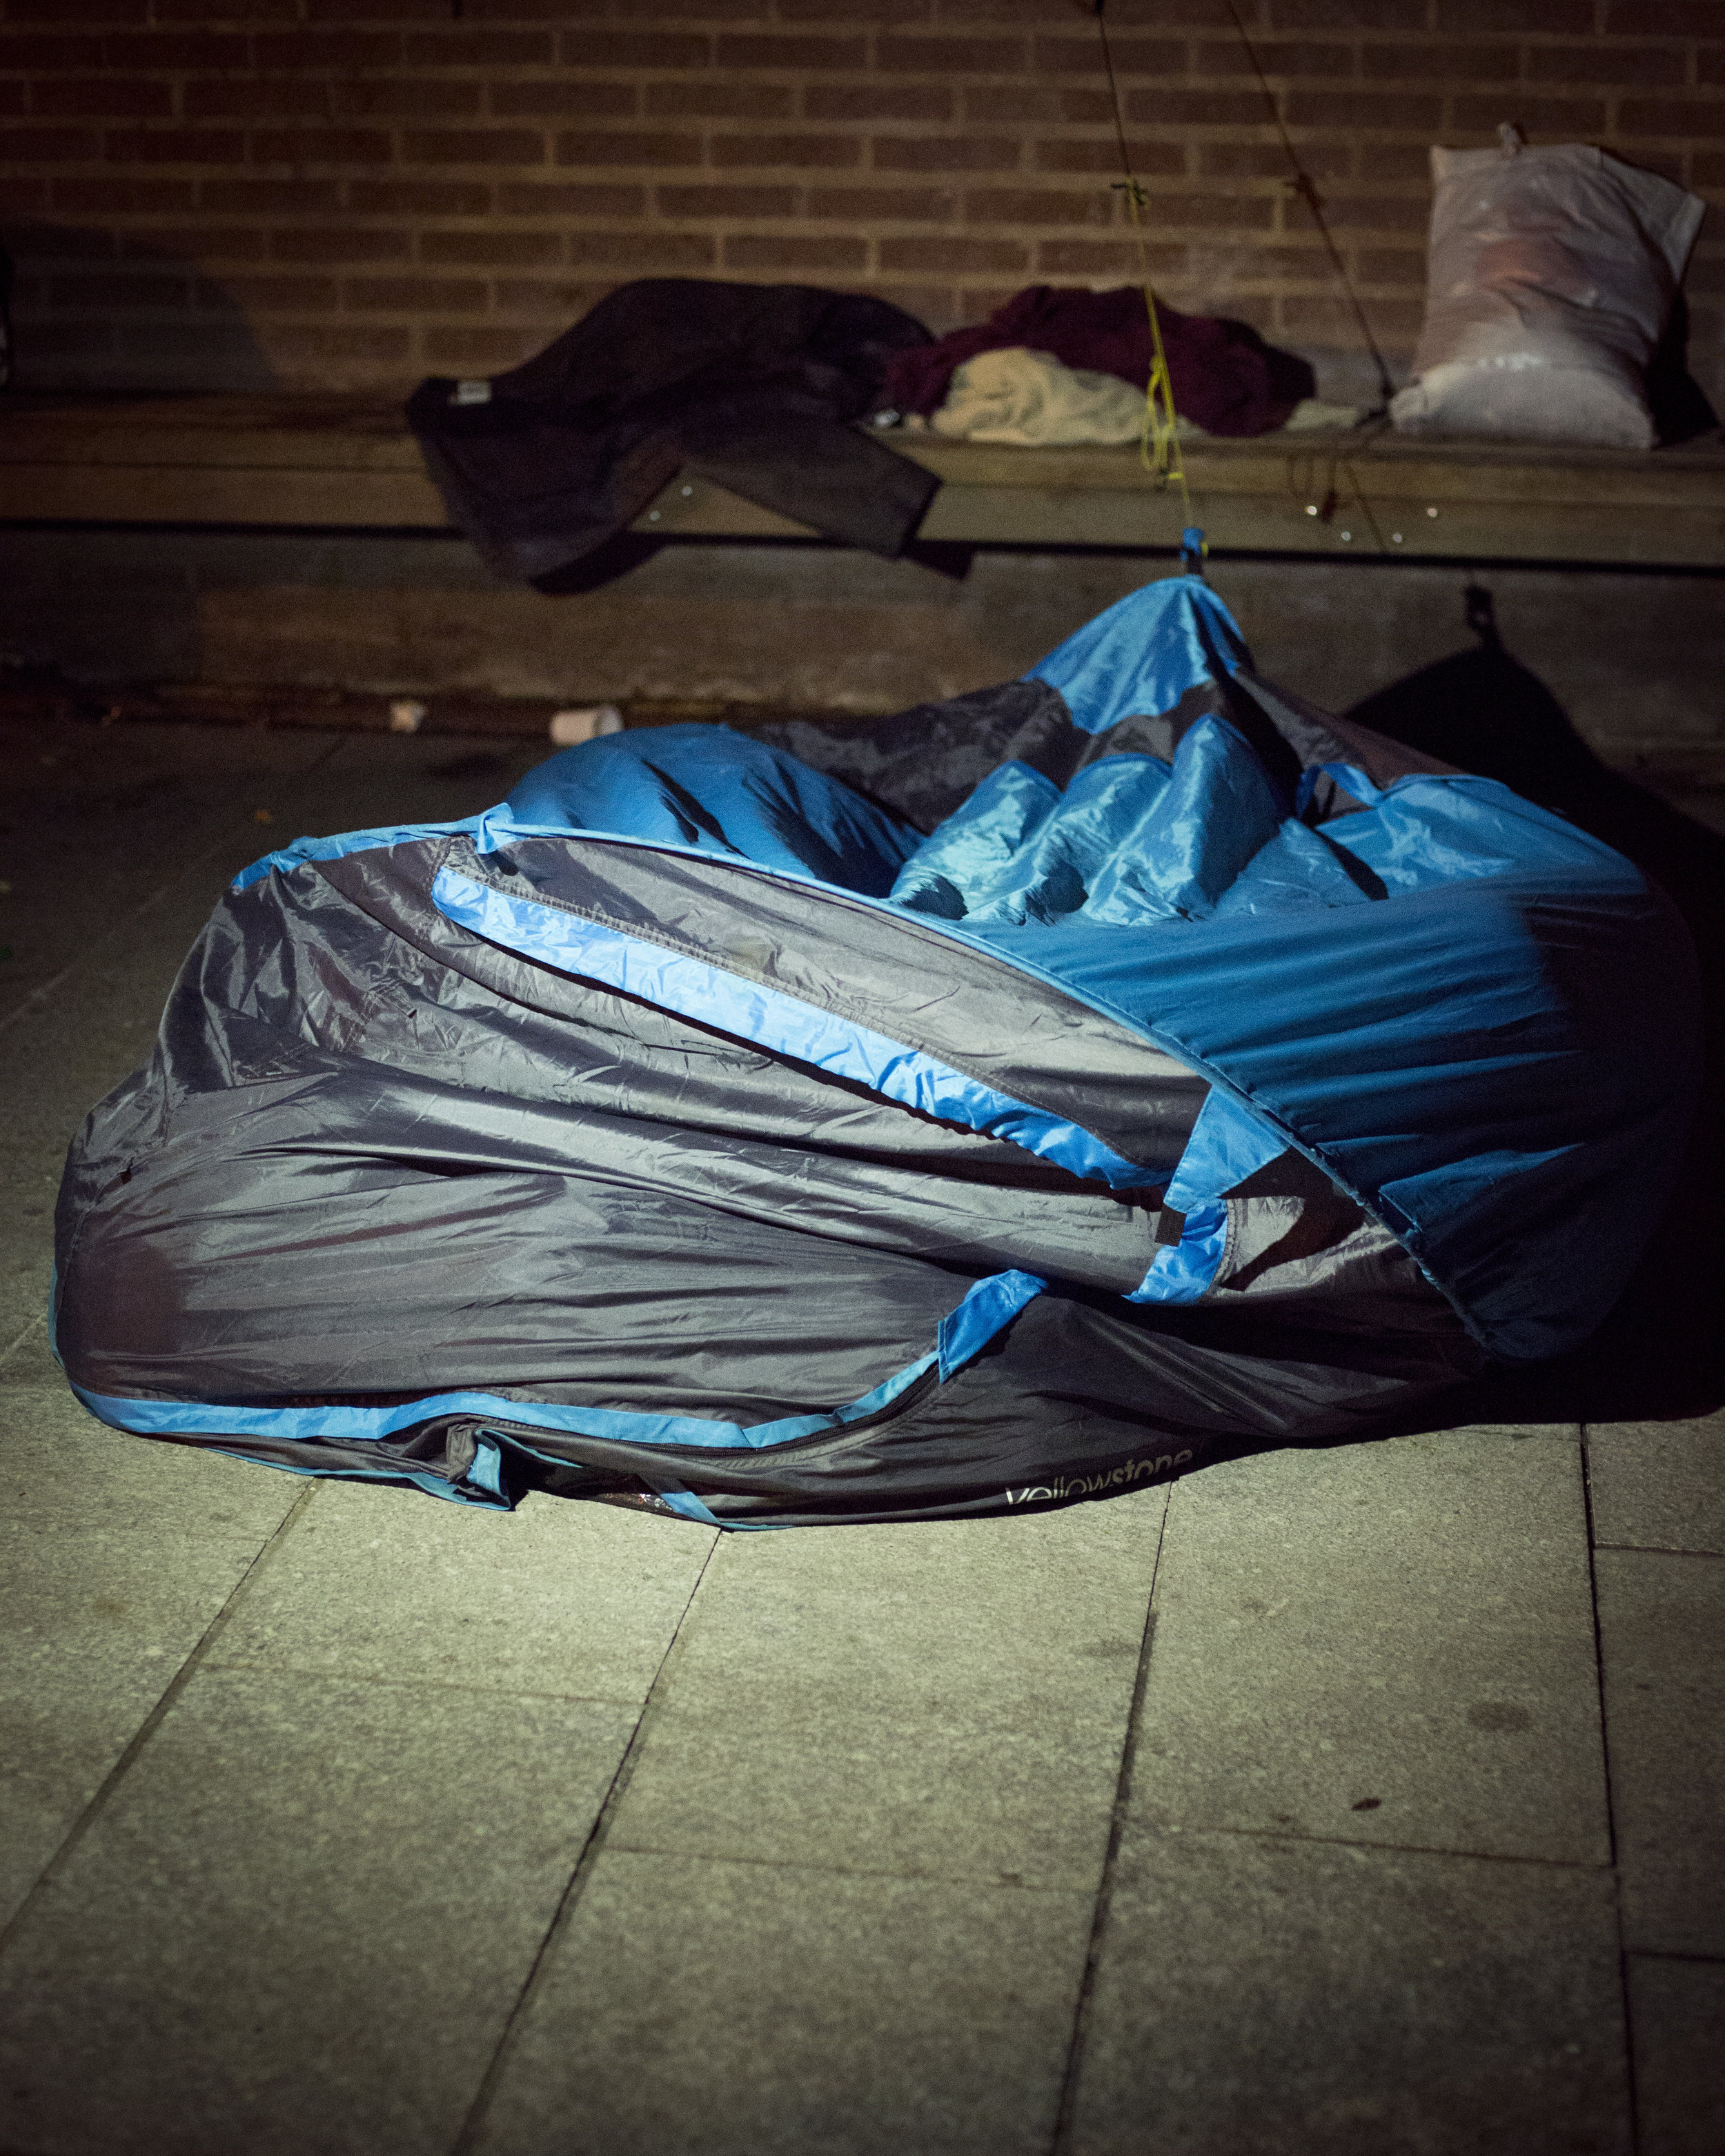 Two Men Sleeping in a Crushed Tent, St. Denis, France || For The New York Times